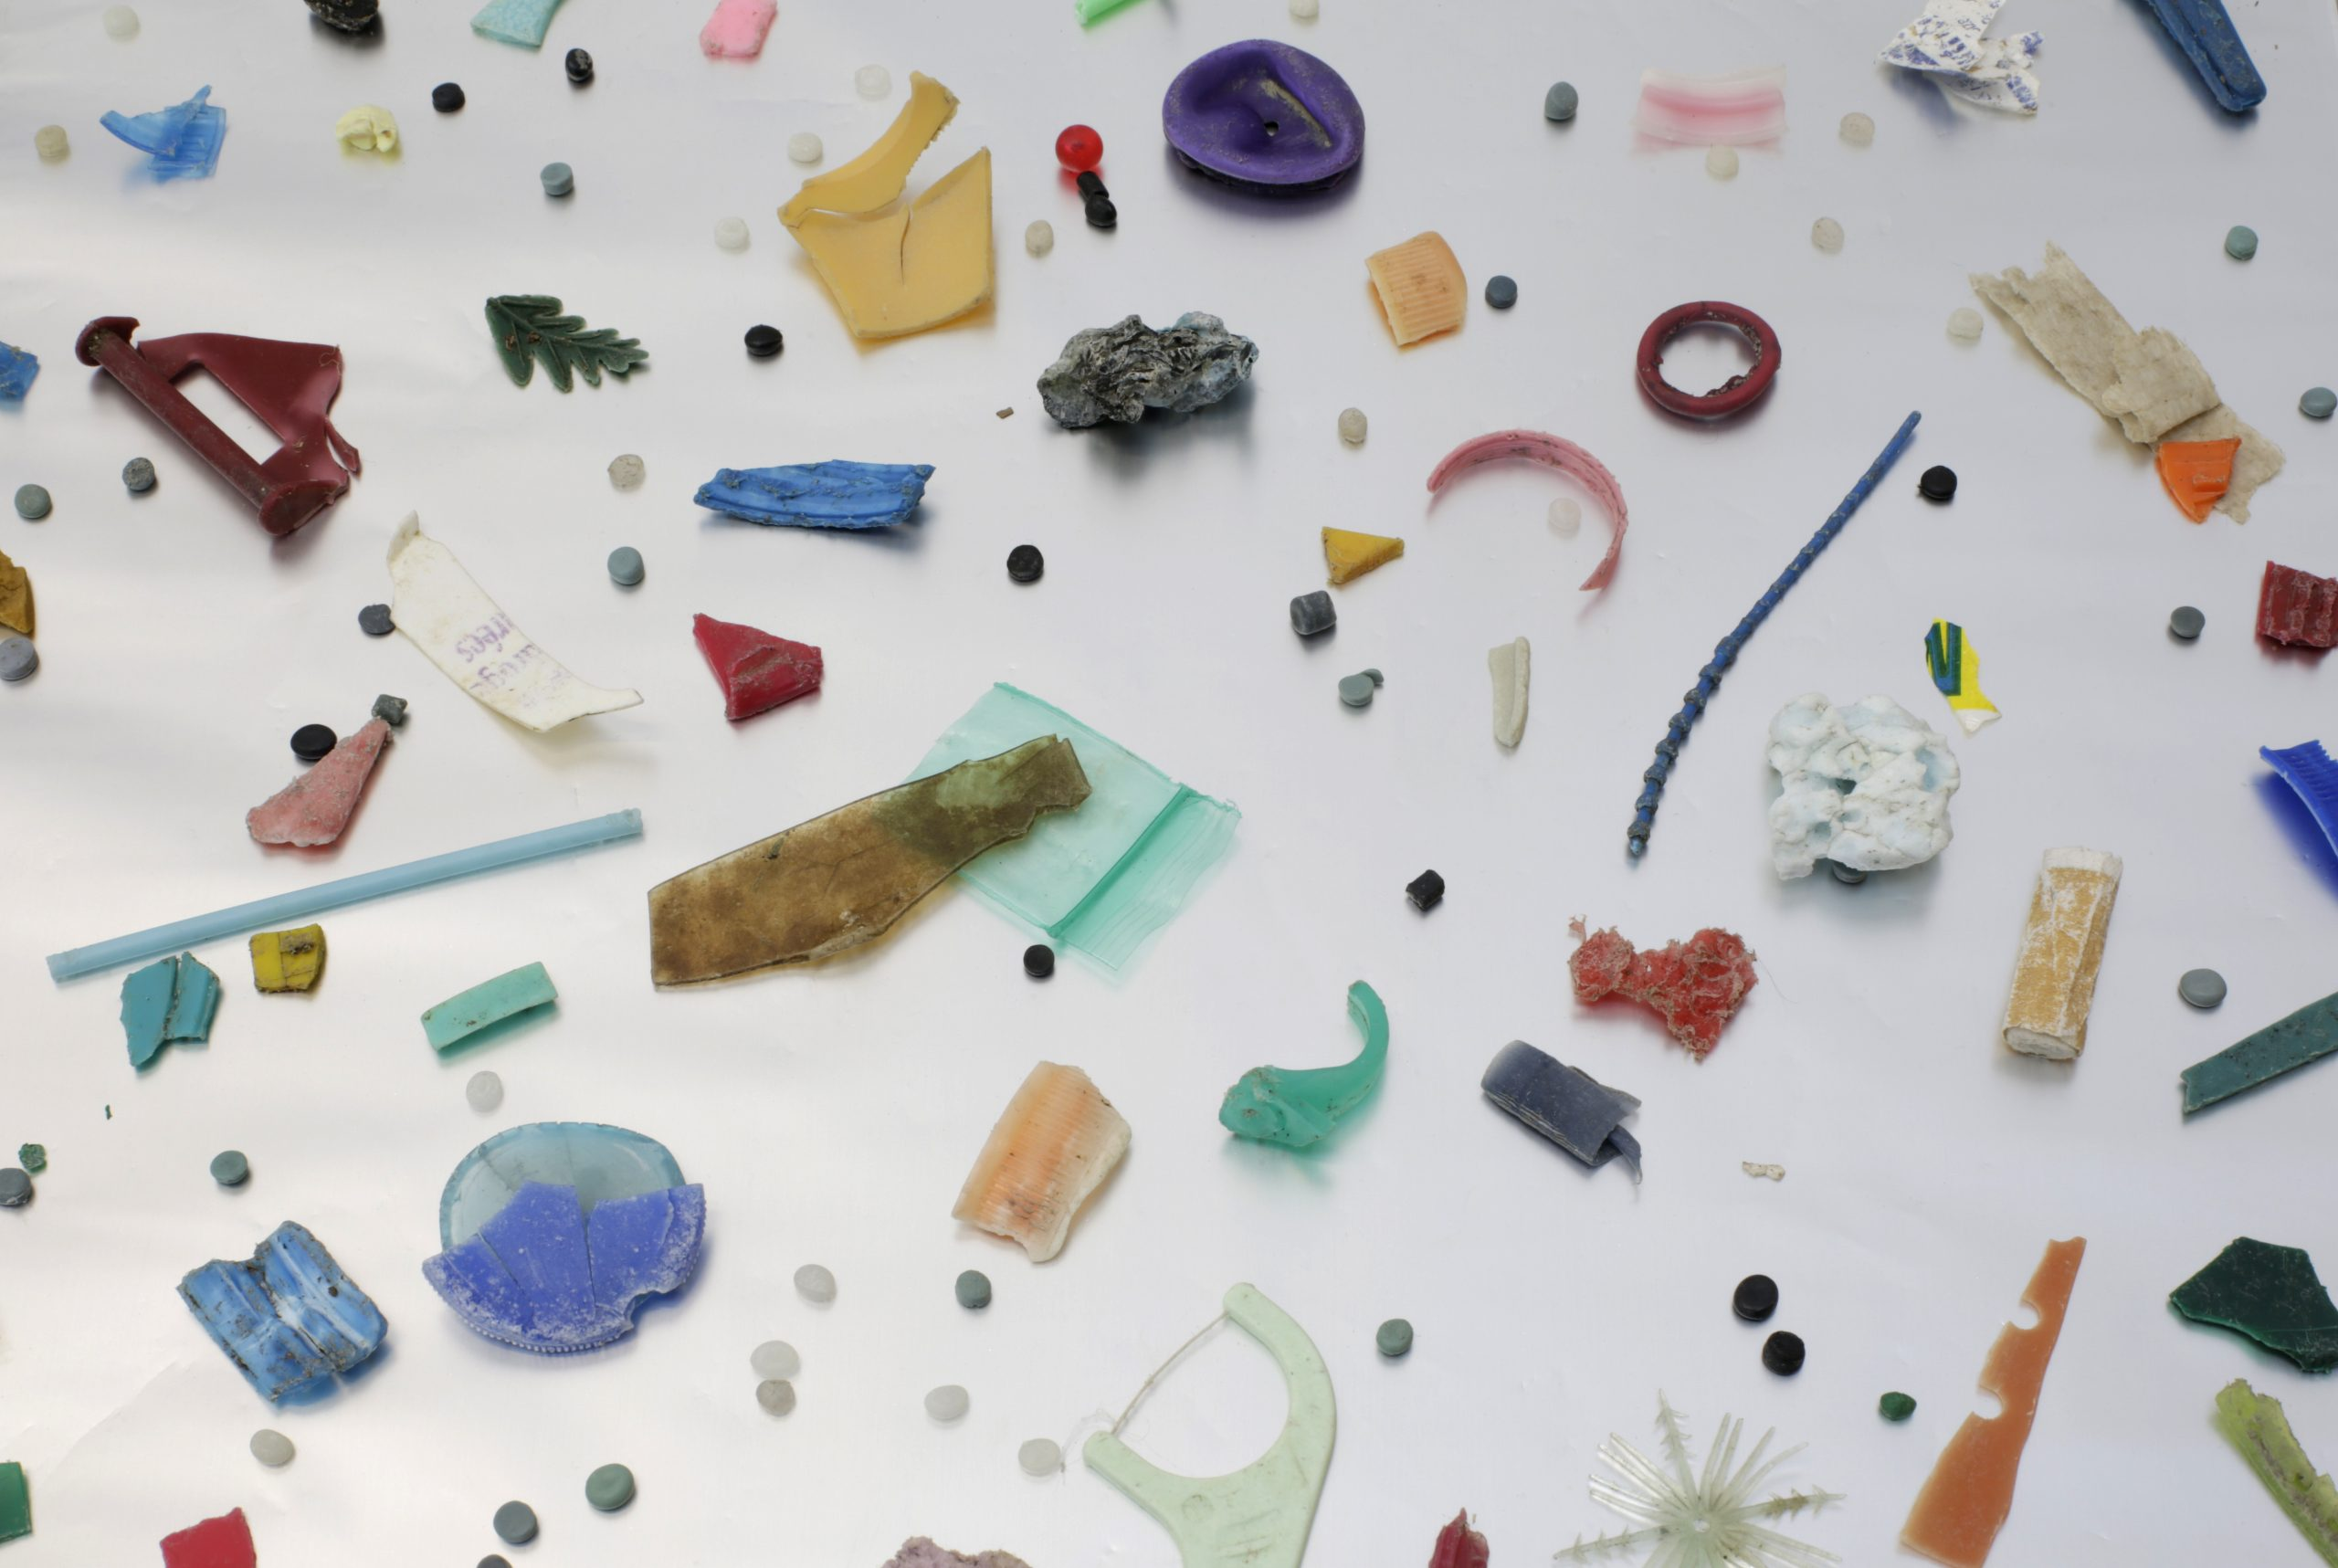 various pieces of plastic objects against white surface